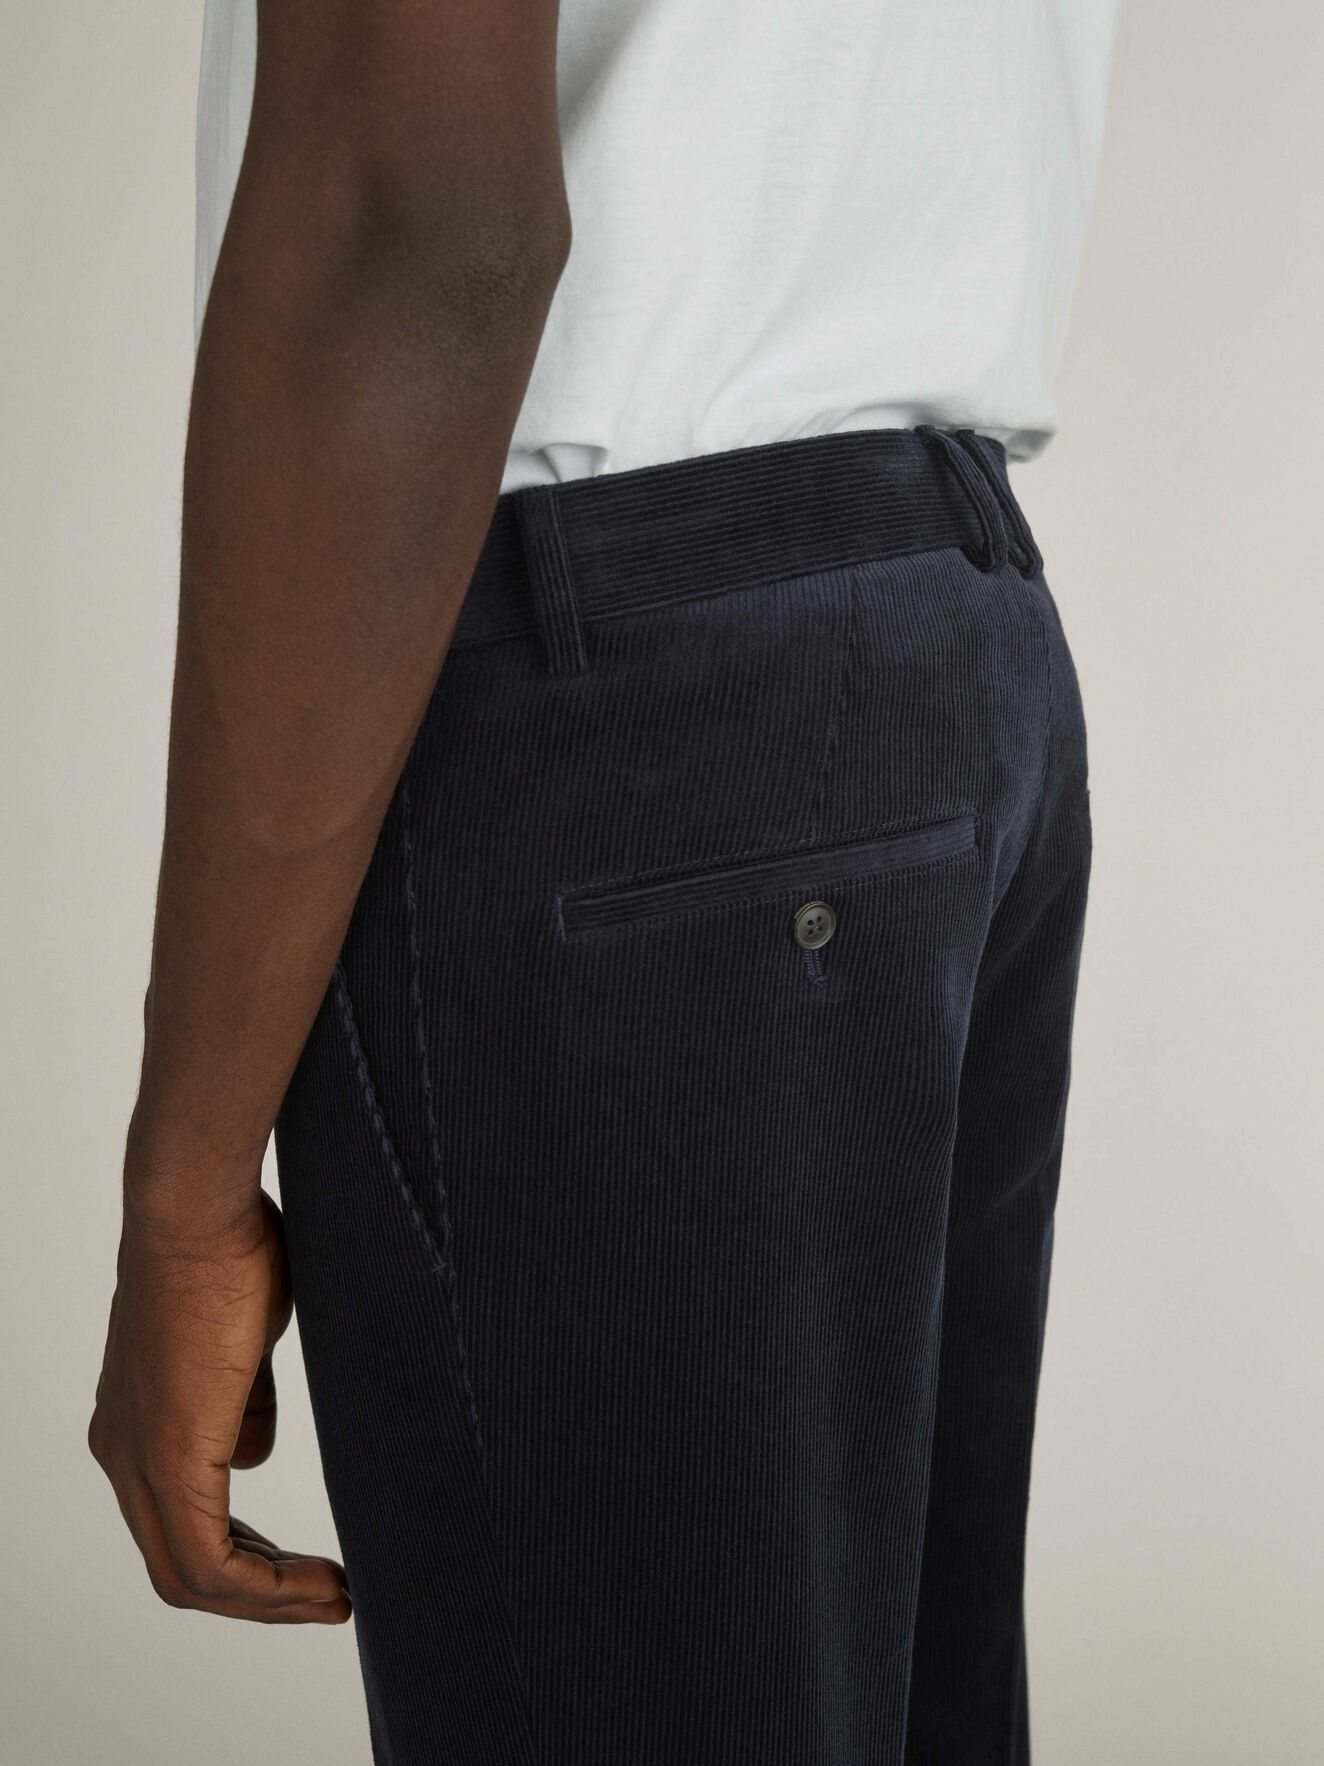 Todman Trousers in Light Ink from Tiger of Sweden